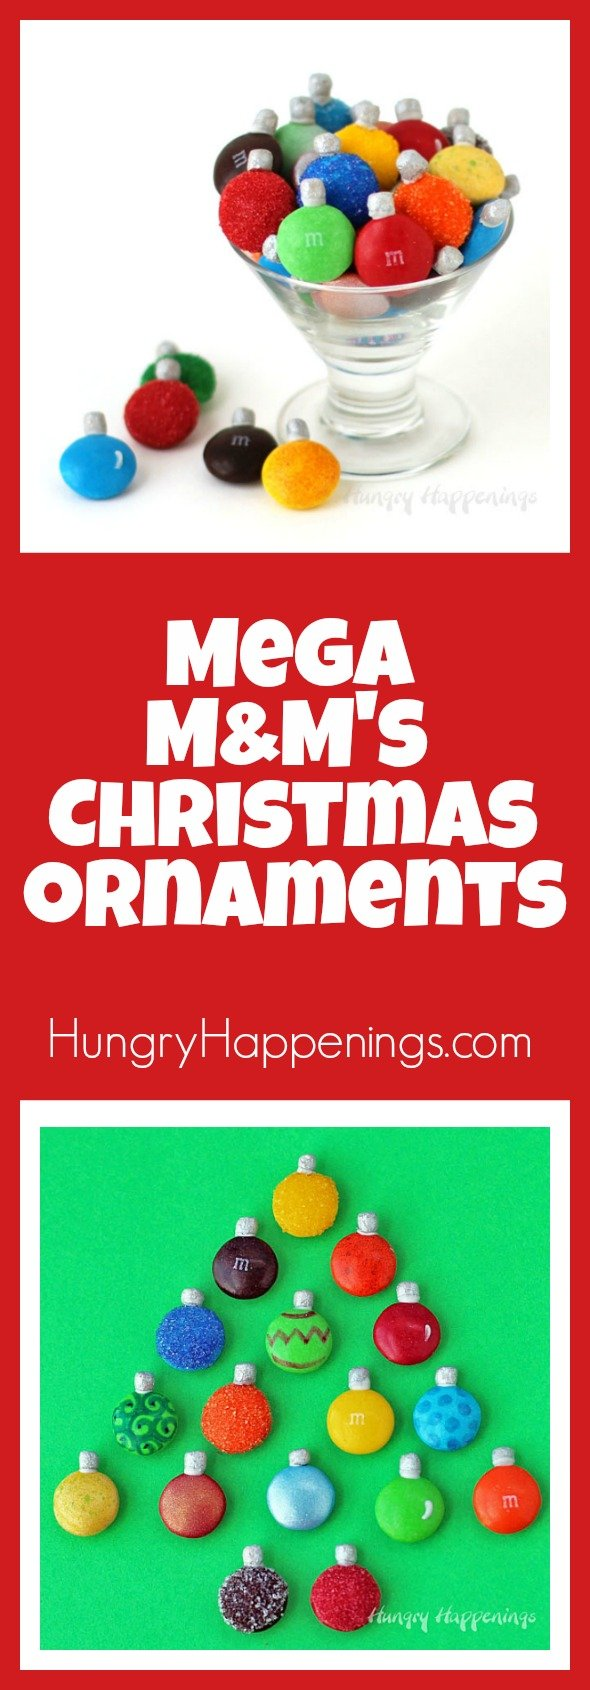 The moment I opened my first package of Mega M&M's I could see so many edible craft possibilities including these Mega M&M's Christmas Ornaments. You can add these festive candies to a Christmas tree cake or cookie, simply stack them in a candy jar, or if you are ambitious, string them and hang them on an actual tree.